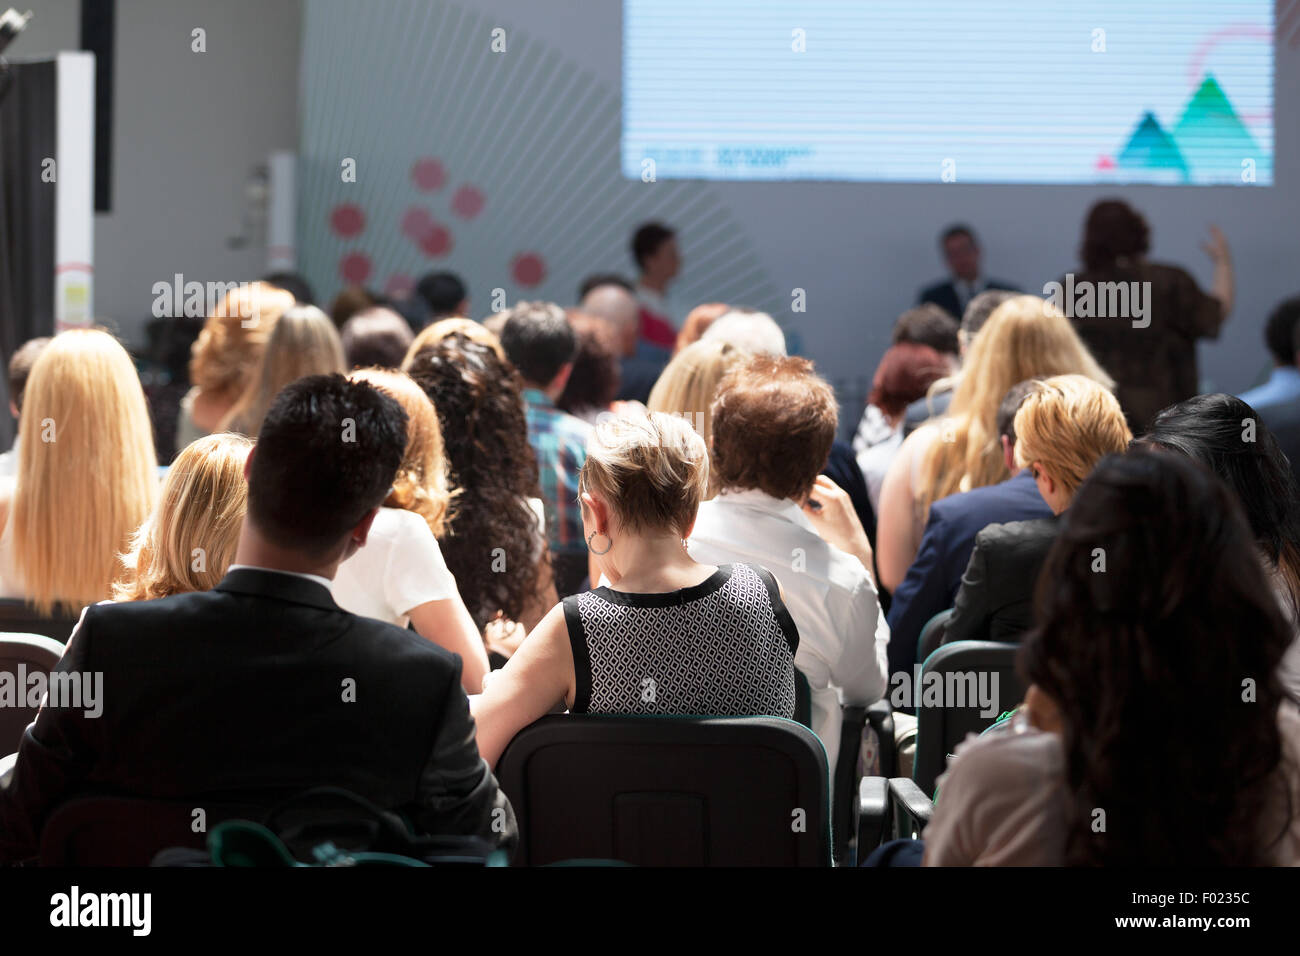 Audience at the business conference - Stock Image